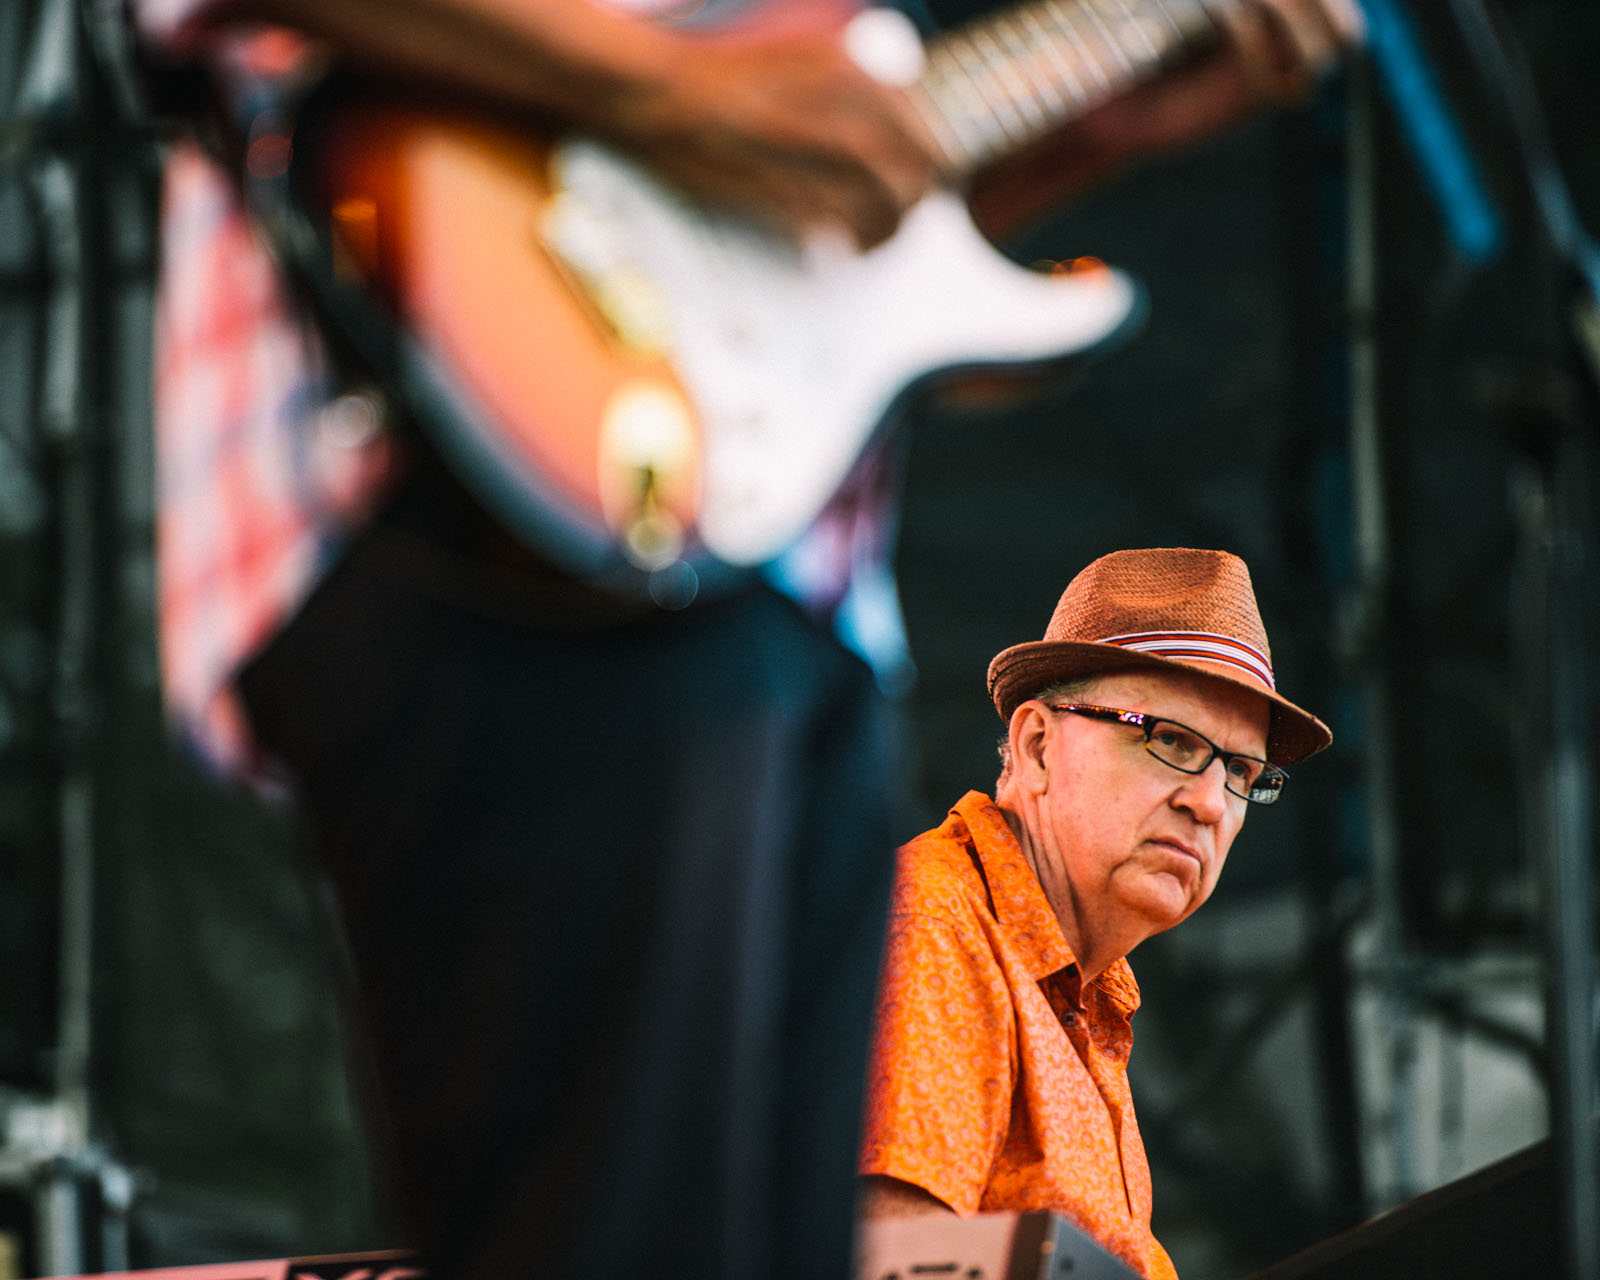 robert_cray_live_the_lawn_indianapolis_2013-03